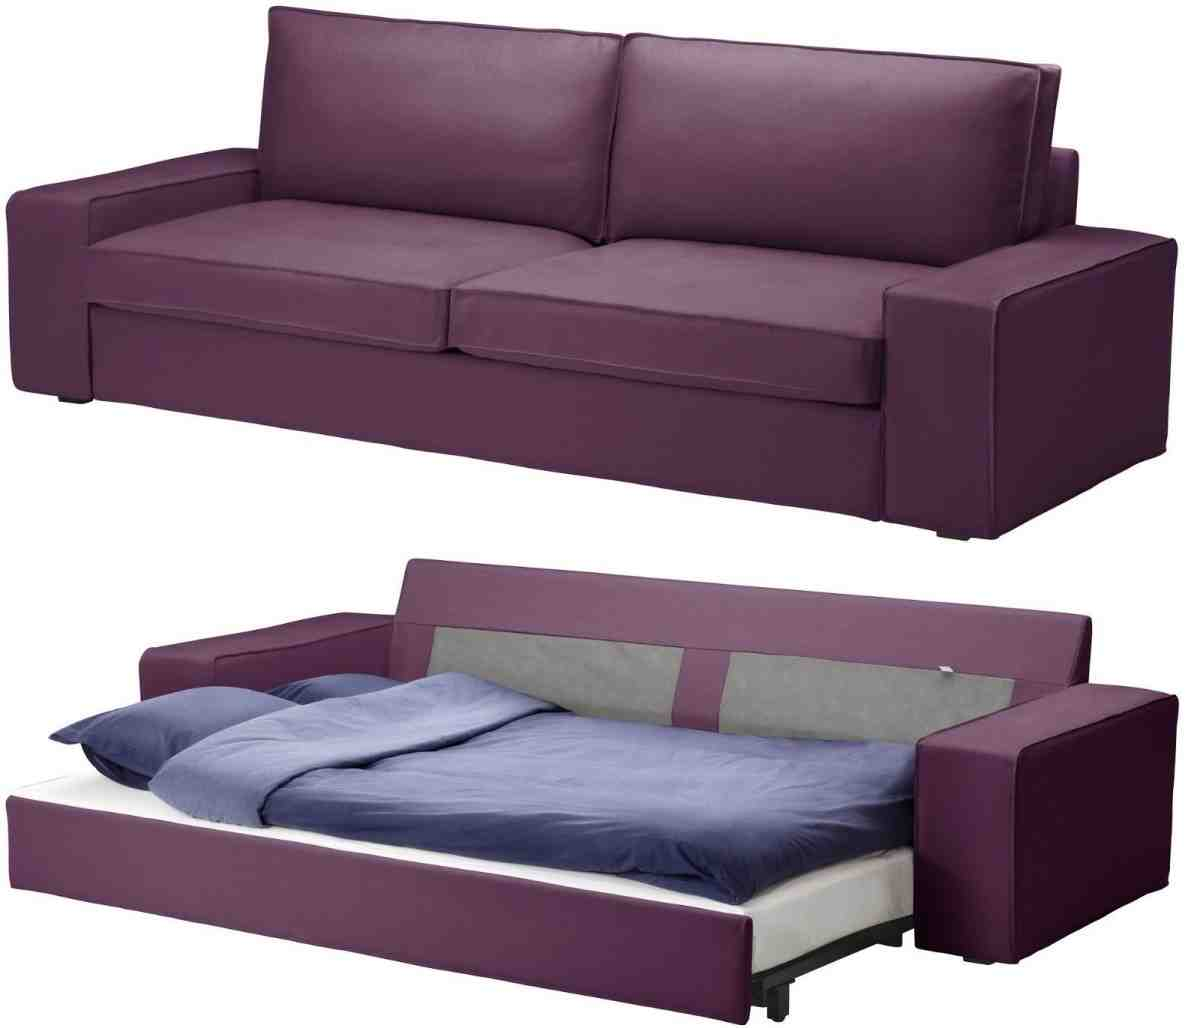 Modern Futon Modern Futon Sofa Bed - Home Furniture Design